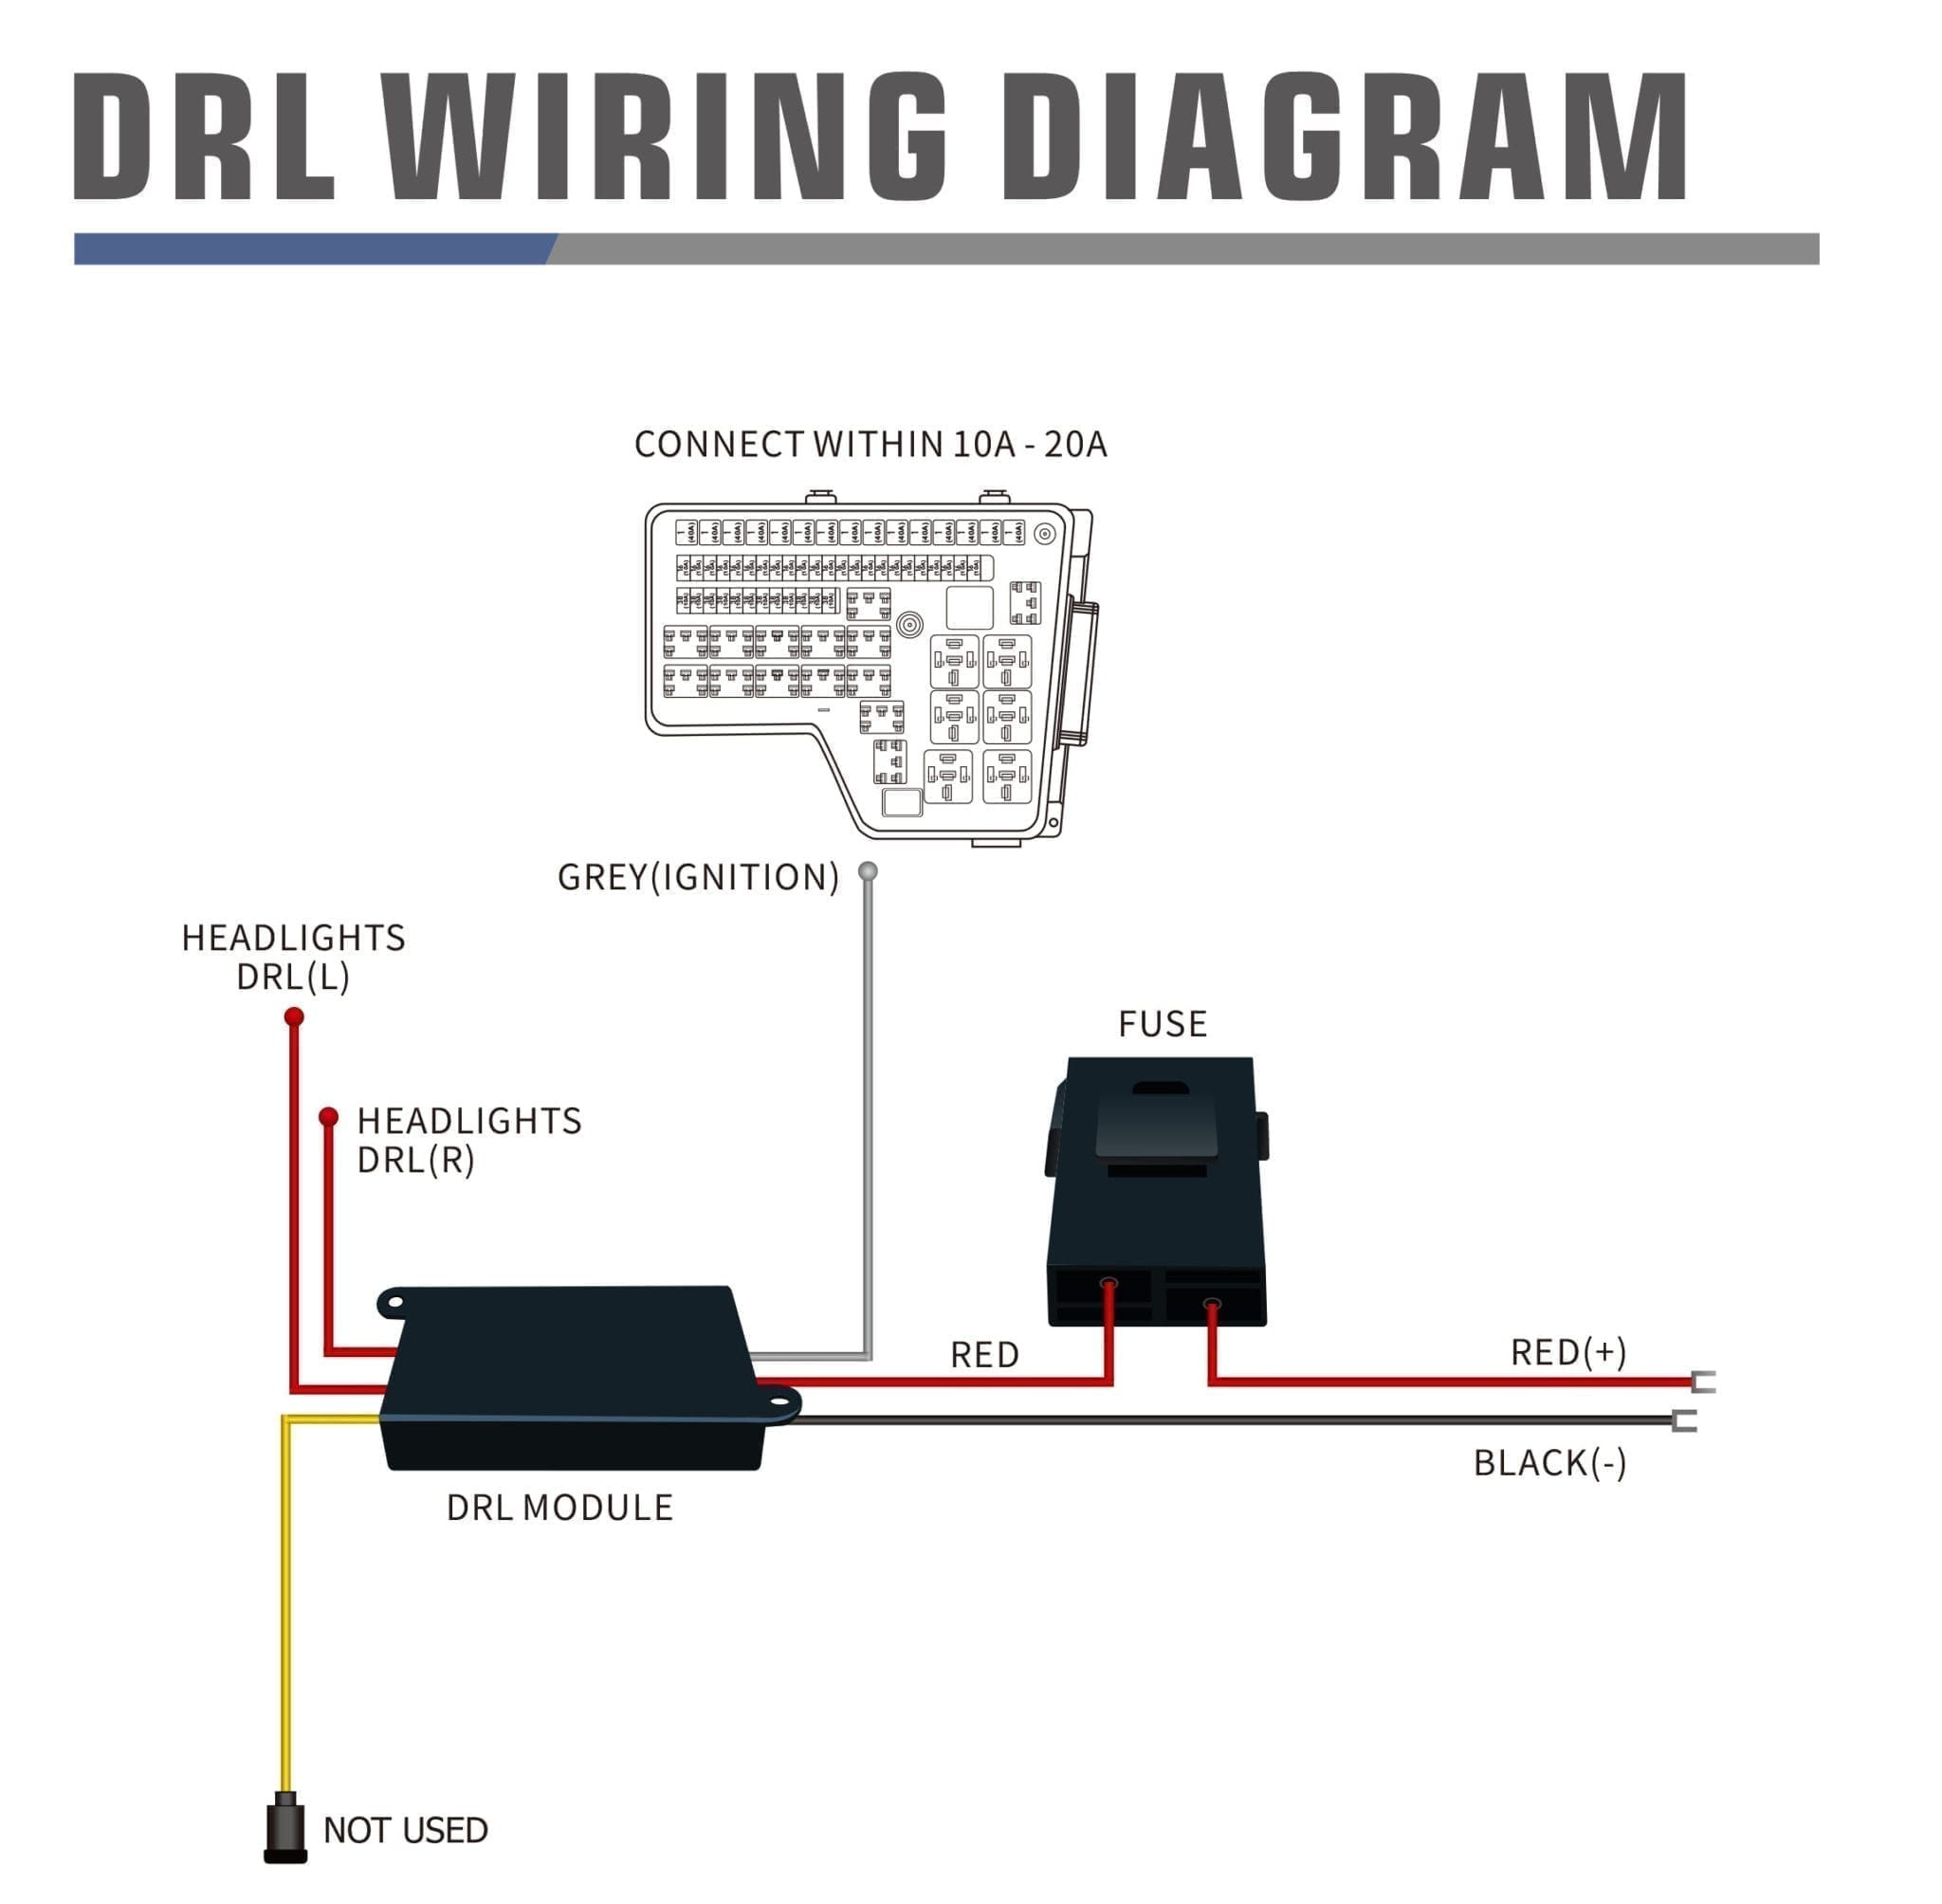 Wiring diagram for DRL harness with Activation light and sequential signal